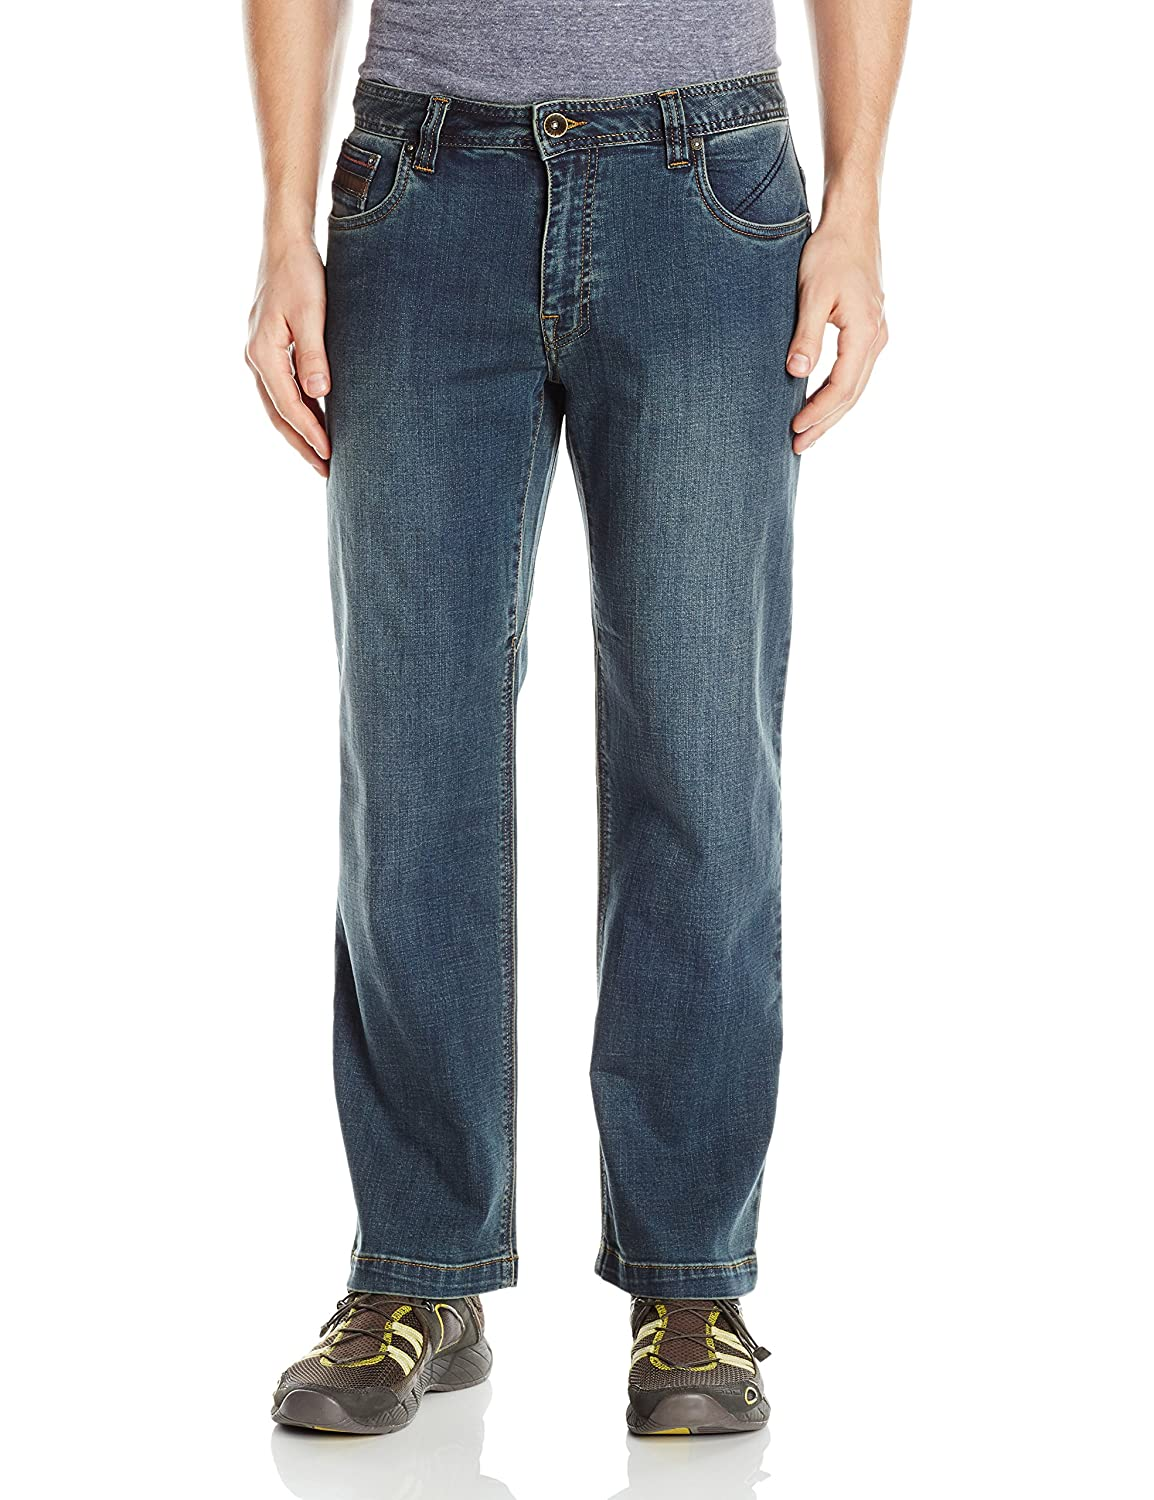 "PrAna Men& 039;s M41173002 Axiom Jean 30"" Inseam, Antique Stone Wash, Größe 33"